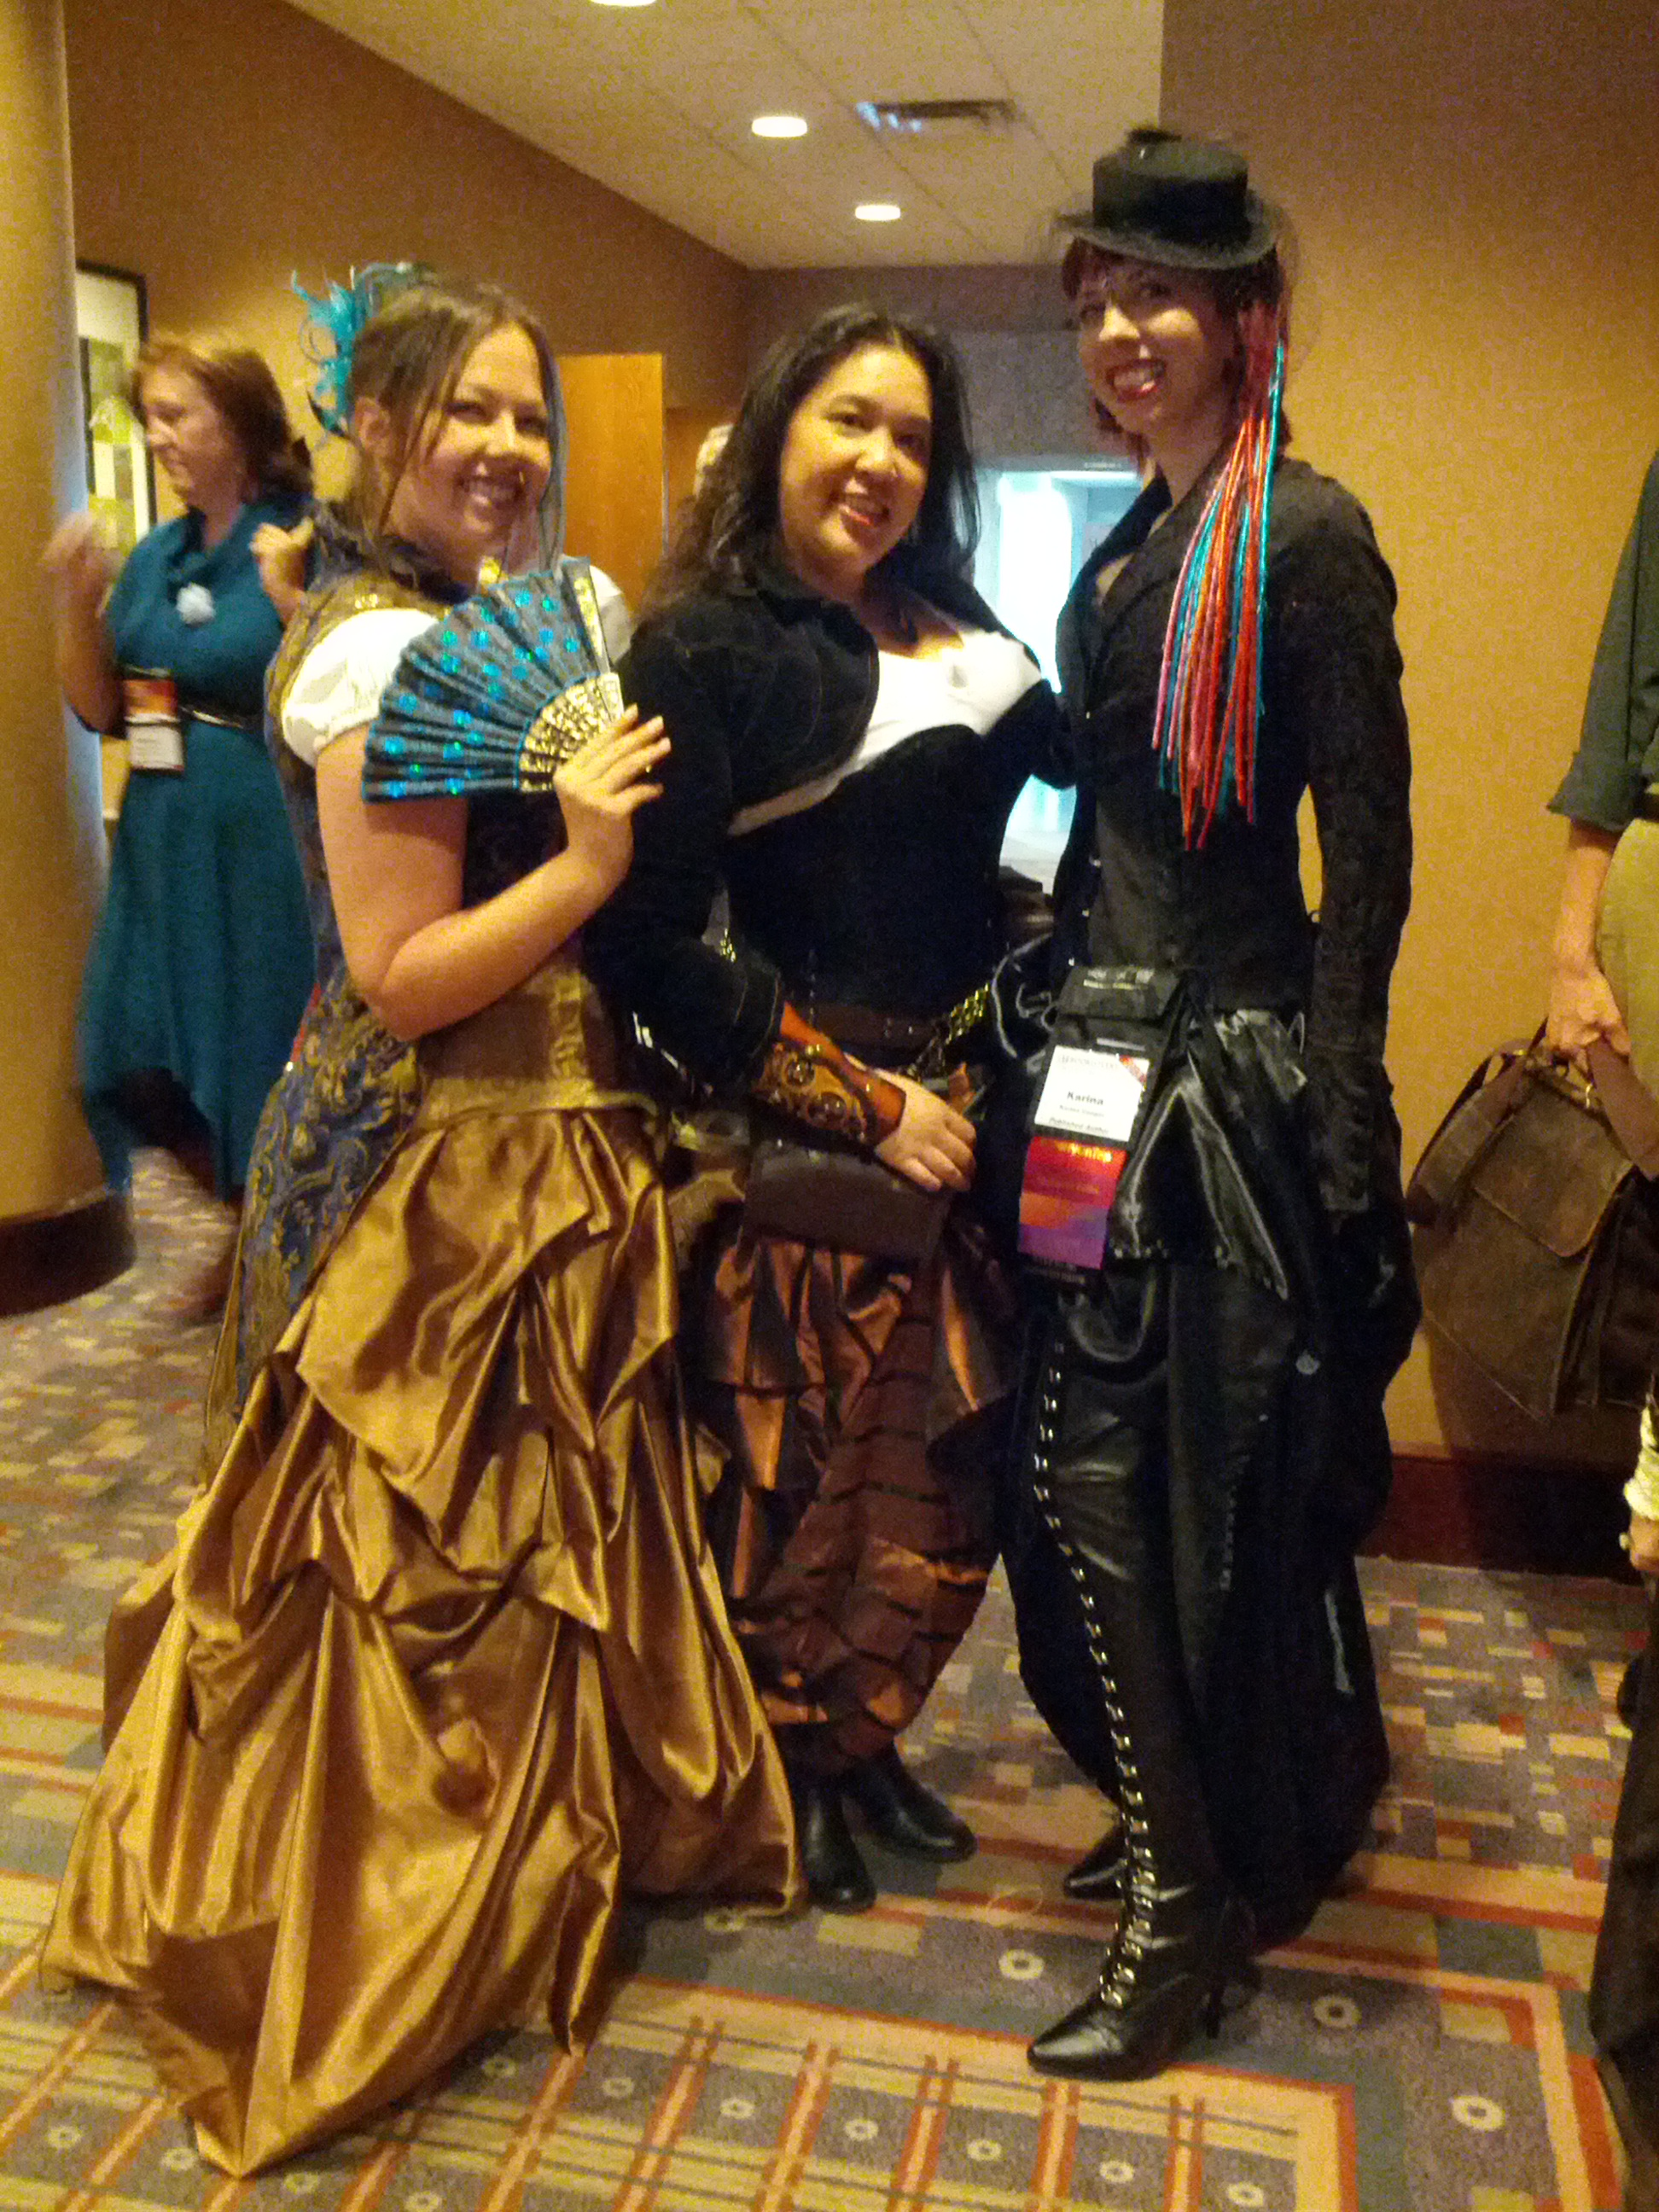 Steampunk costumes of excellence